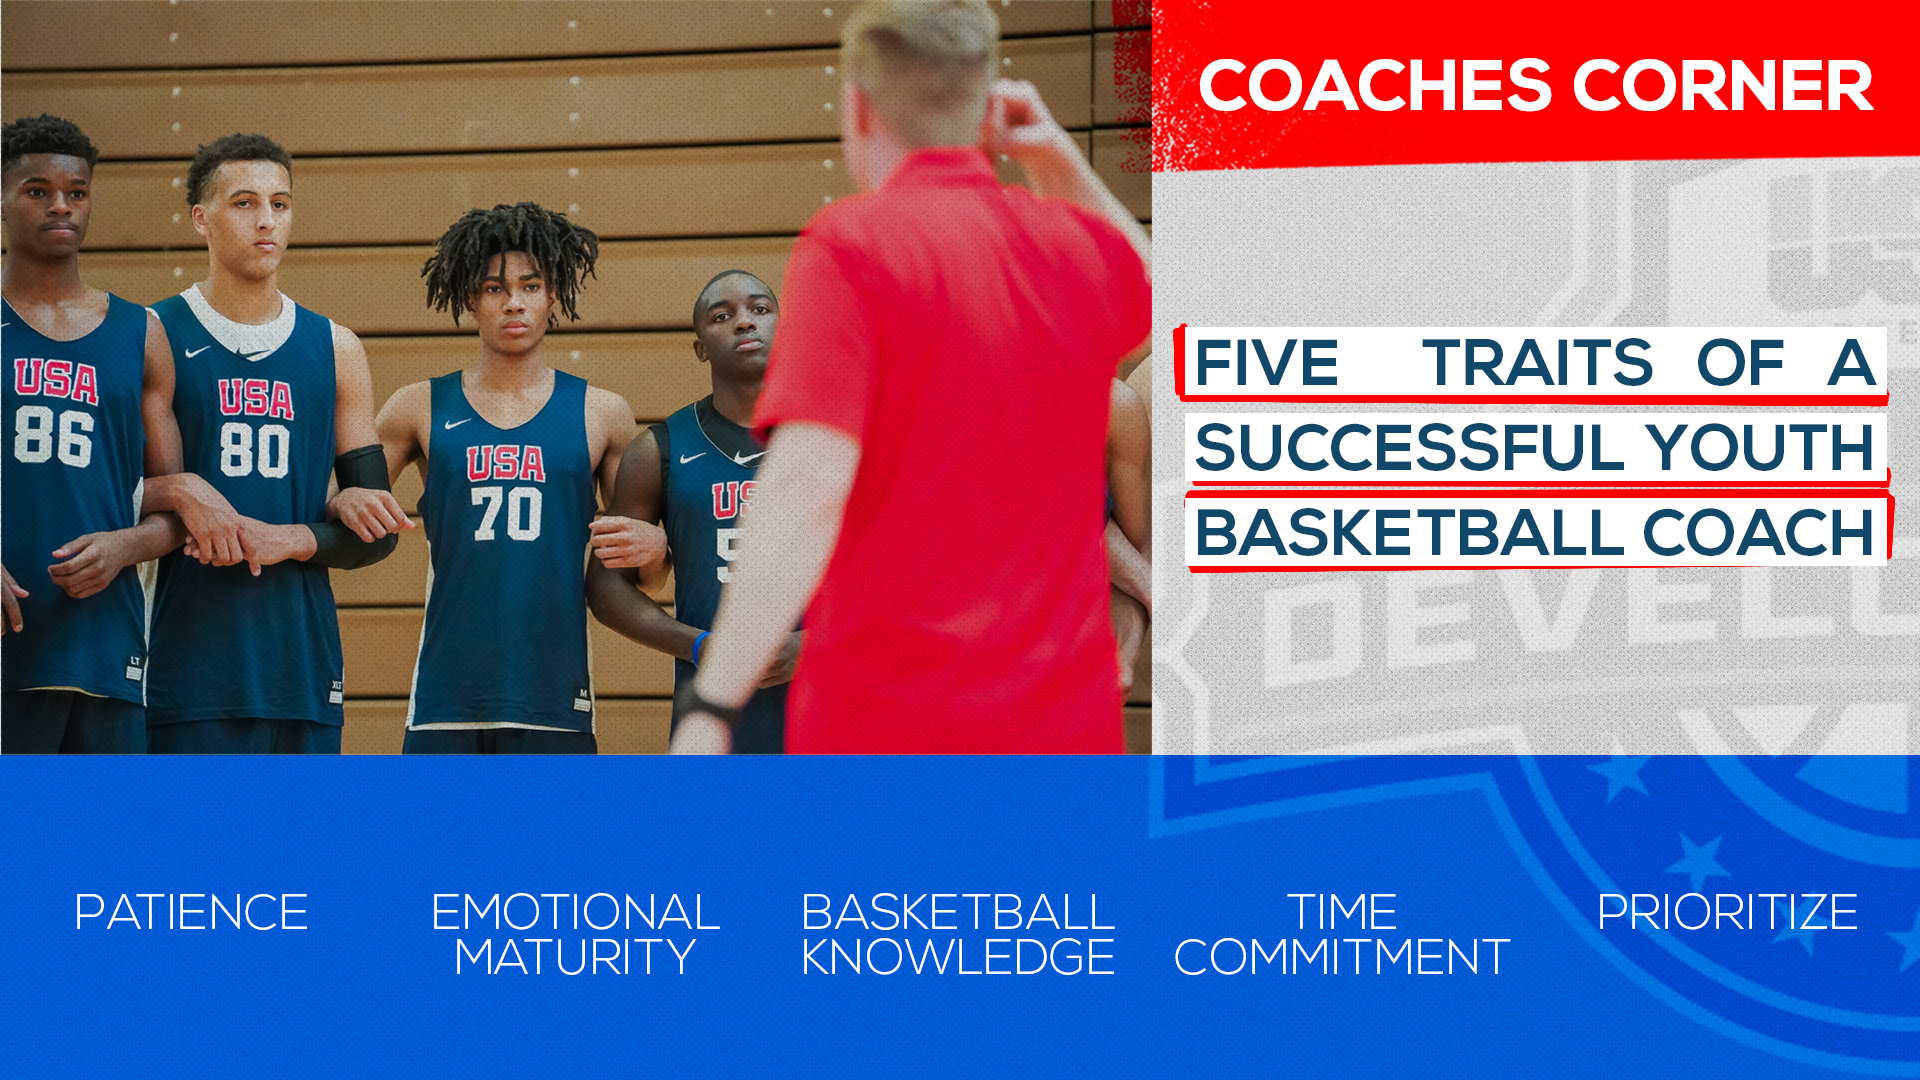 Coaches Corner Five Traits